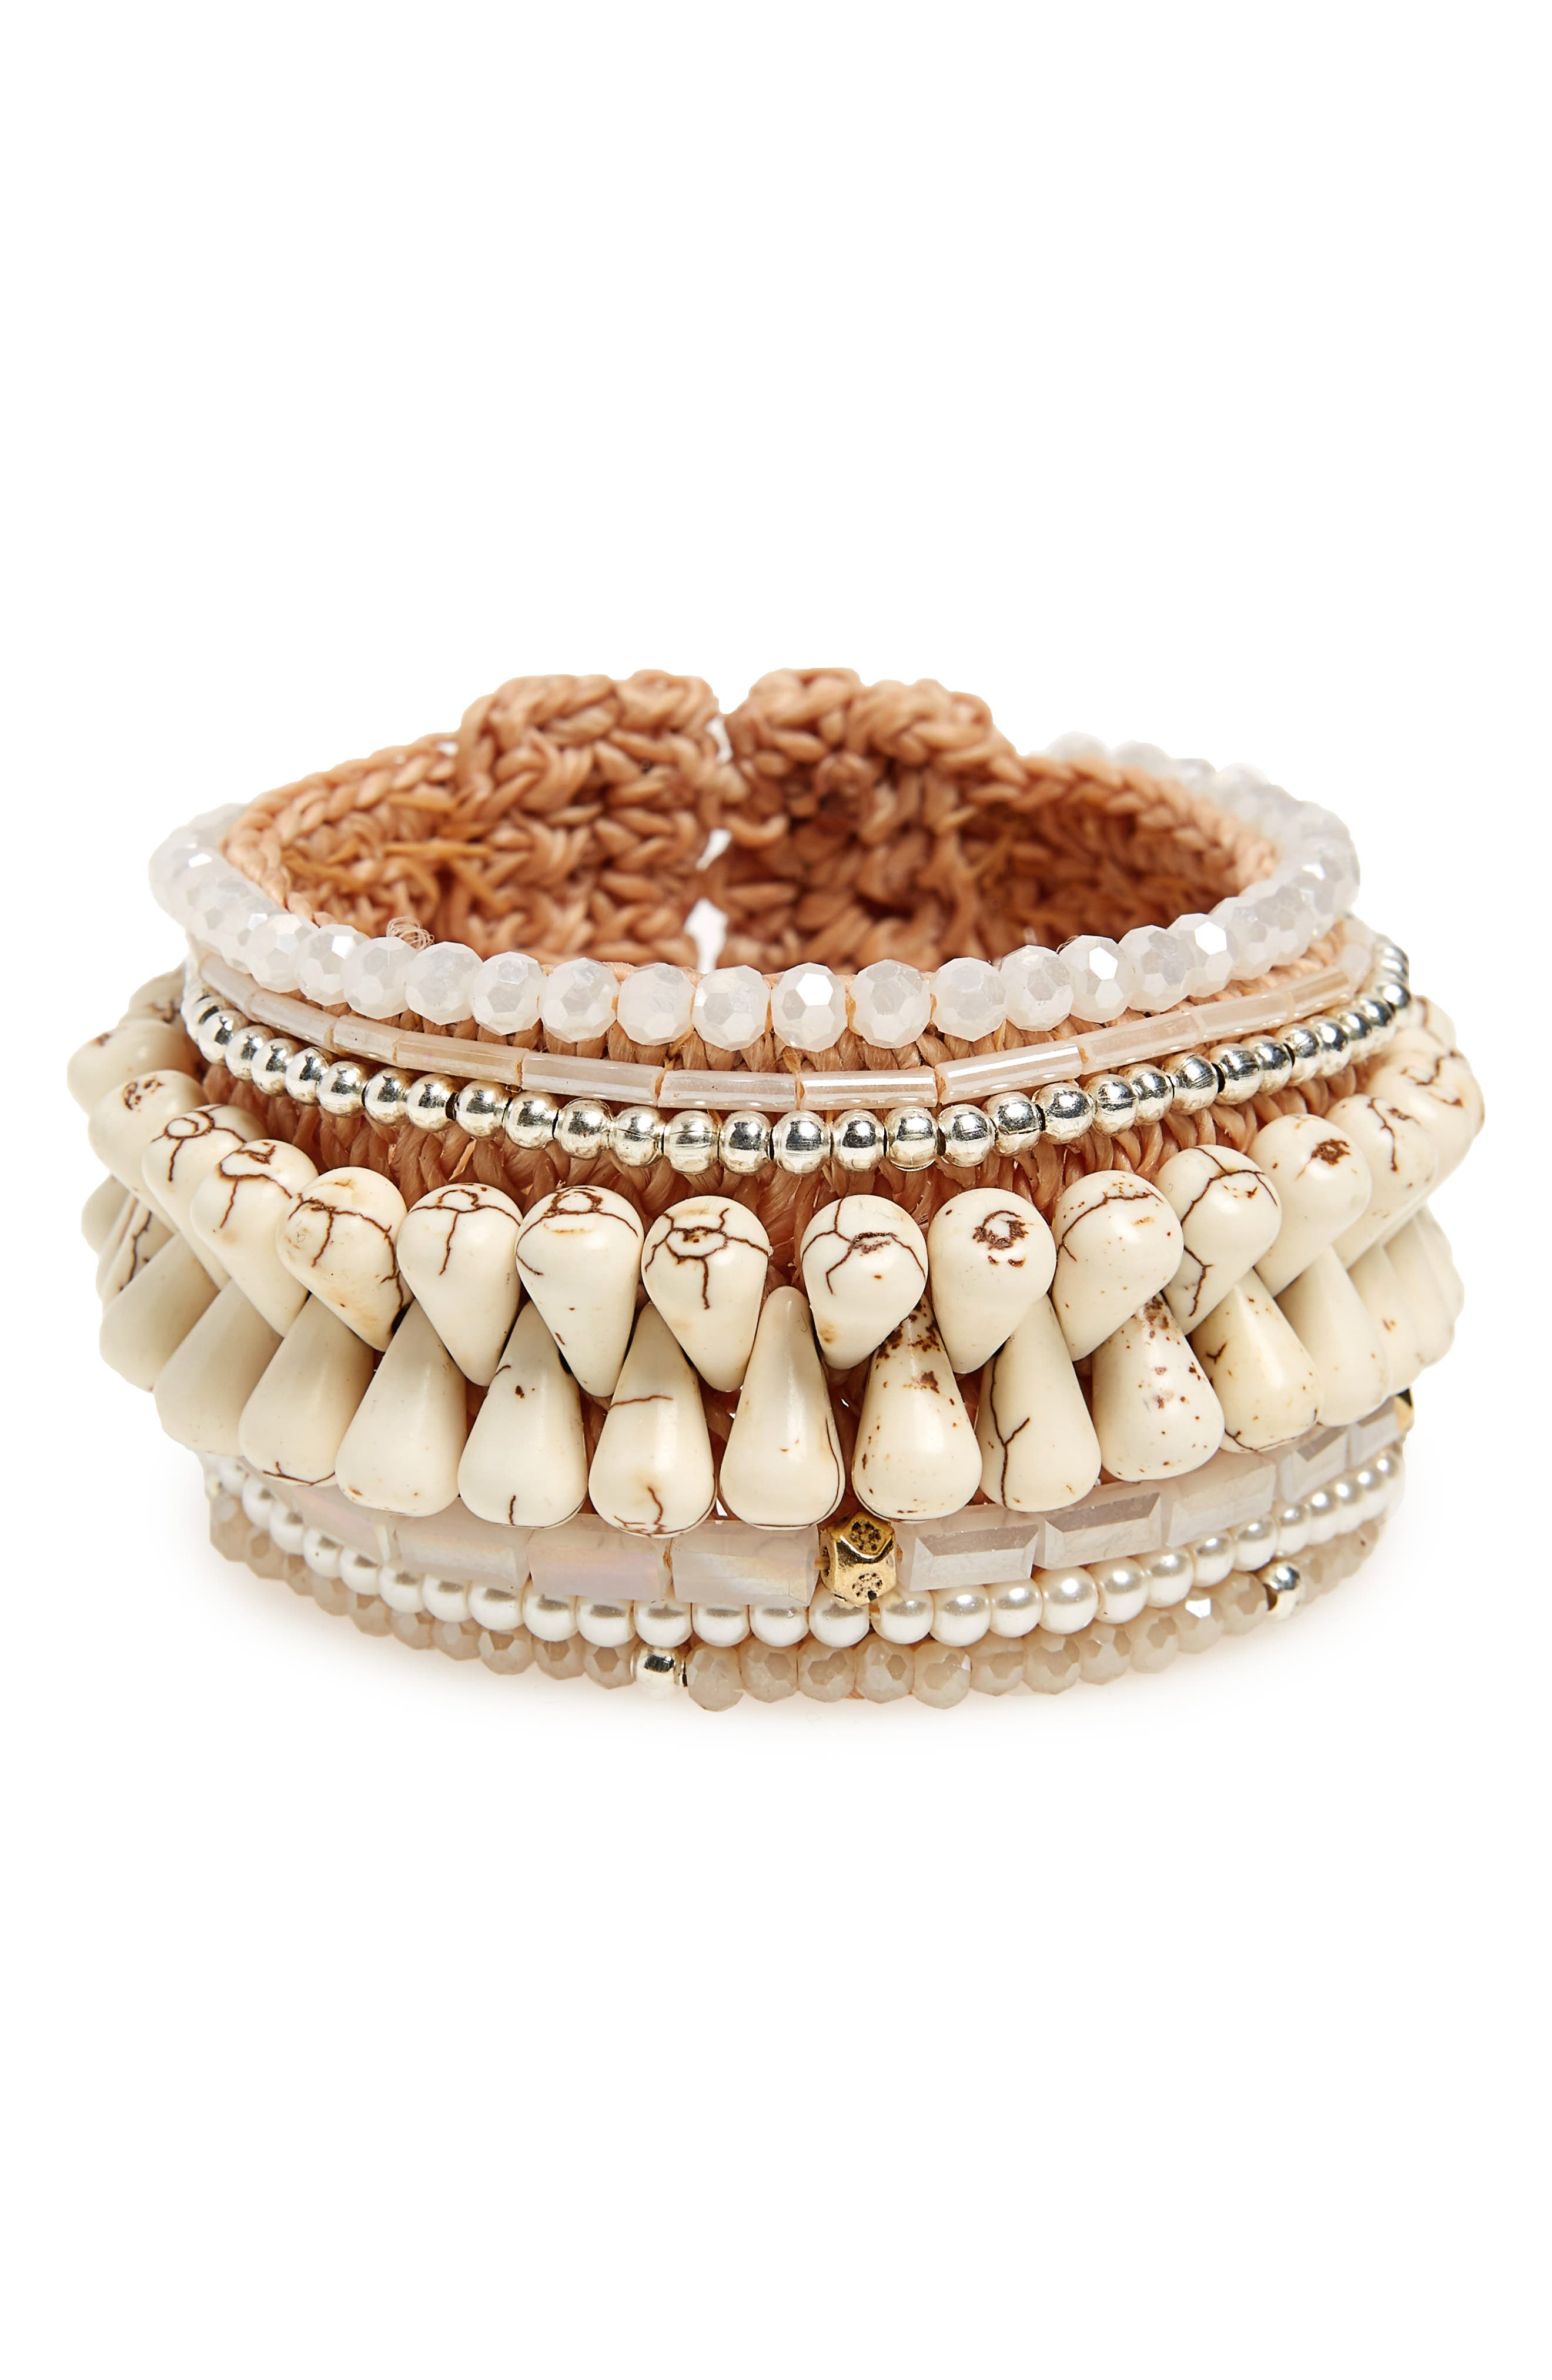 Beaded Rope Cuff Bracelet,                             Main thumbnail 1, color,                             White